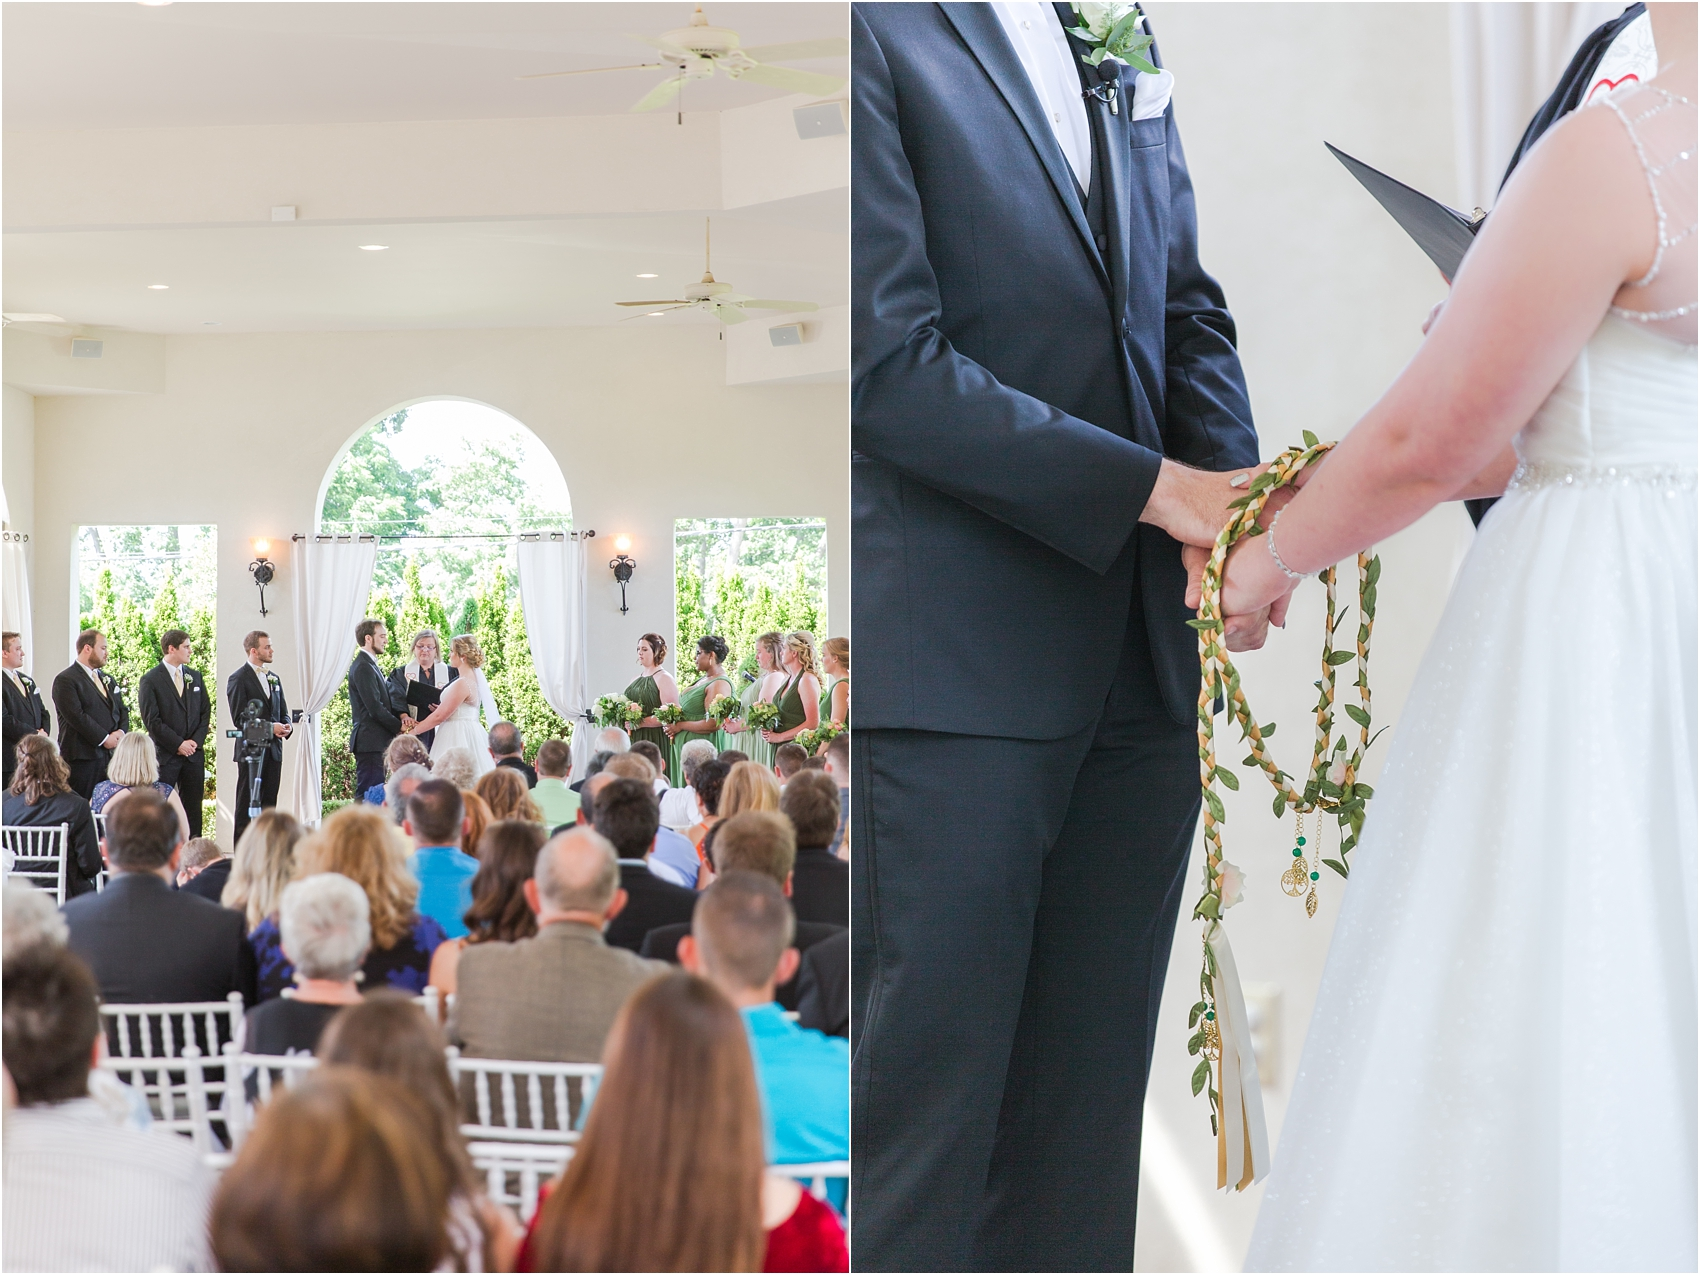 lord-of-the-rings-inspired-wedding-photos-at-crystal-gardens-in-howell-mi-by-courtney-carolyn-photography_0035.jpg